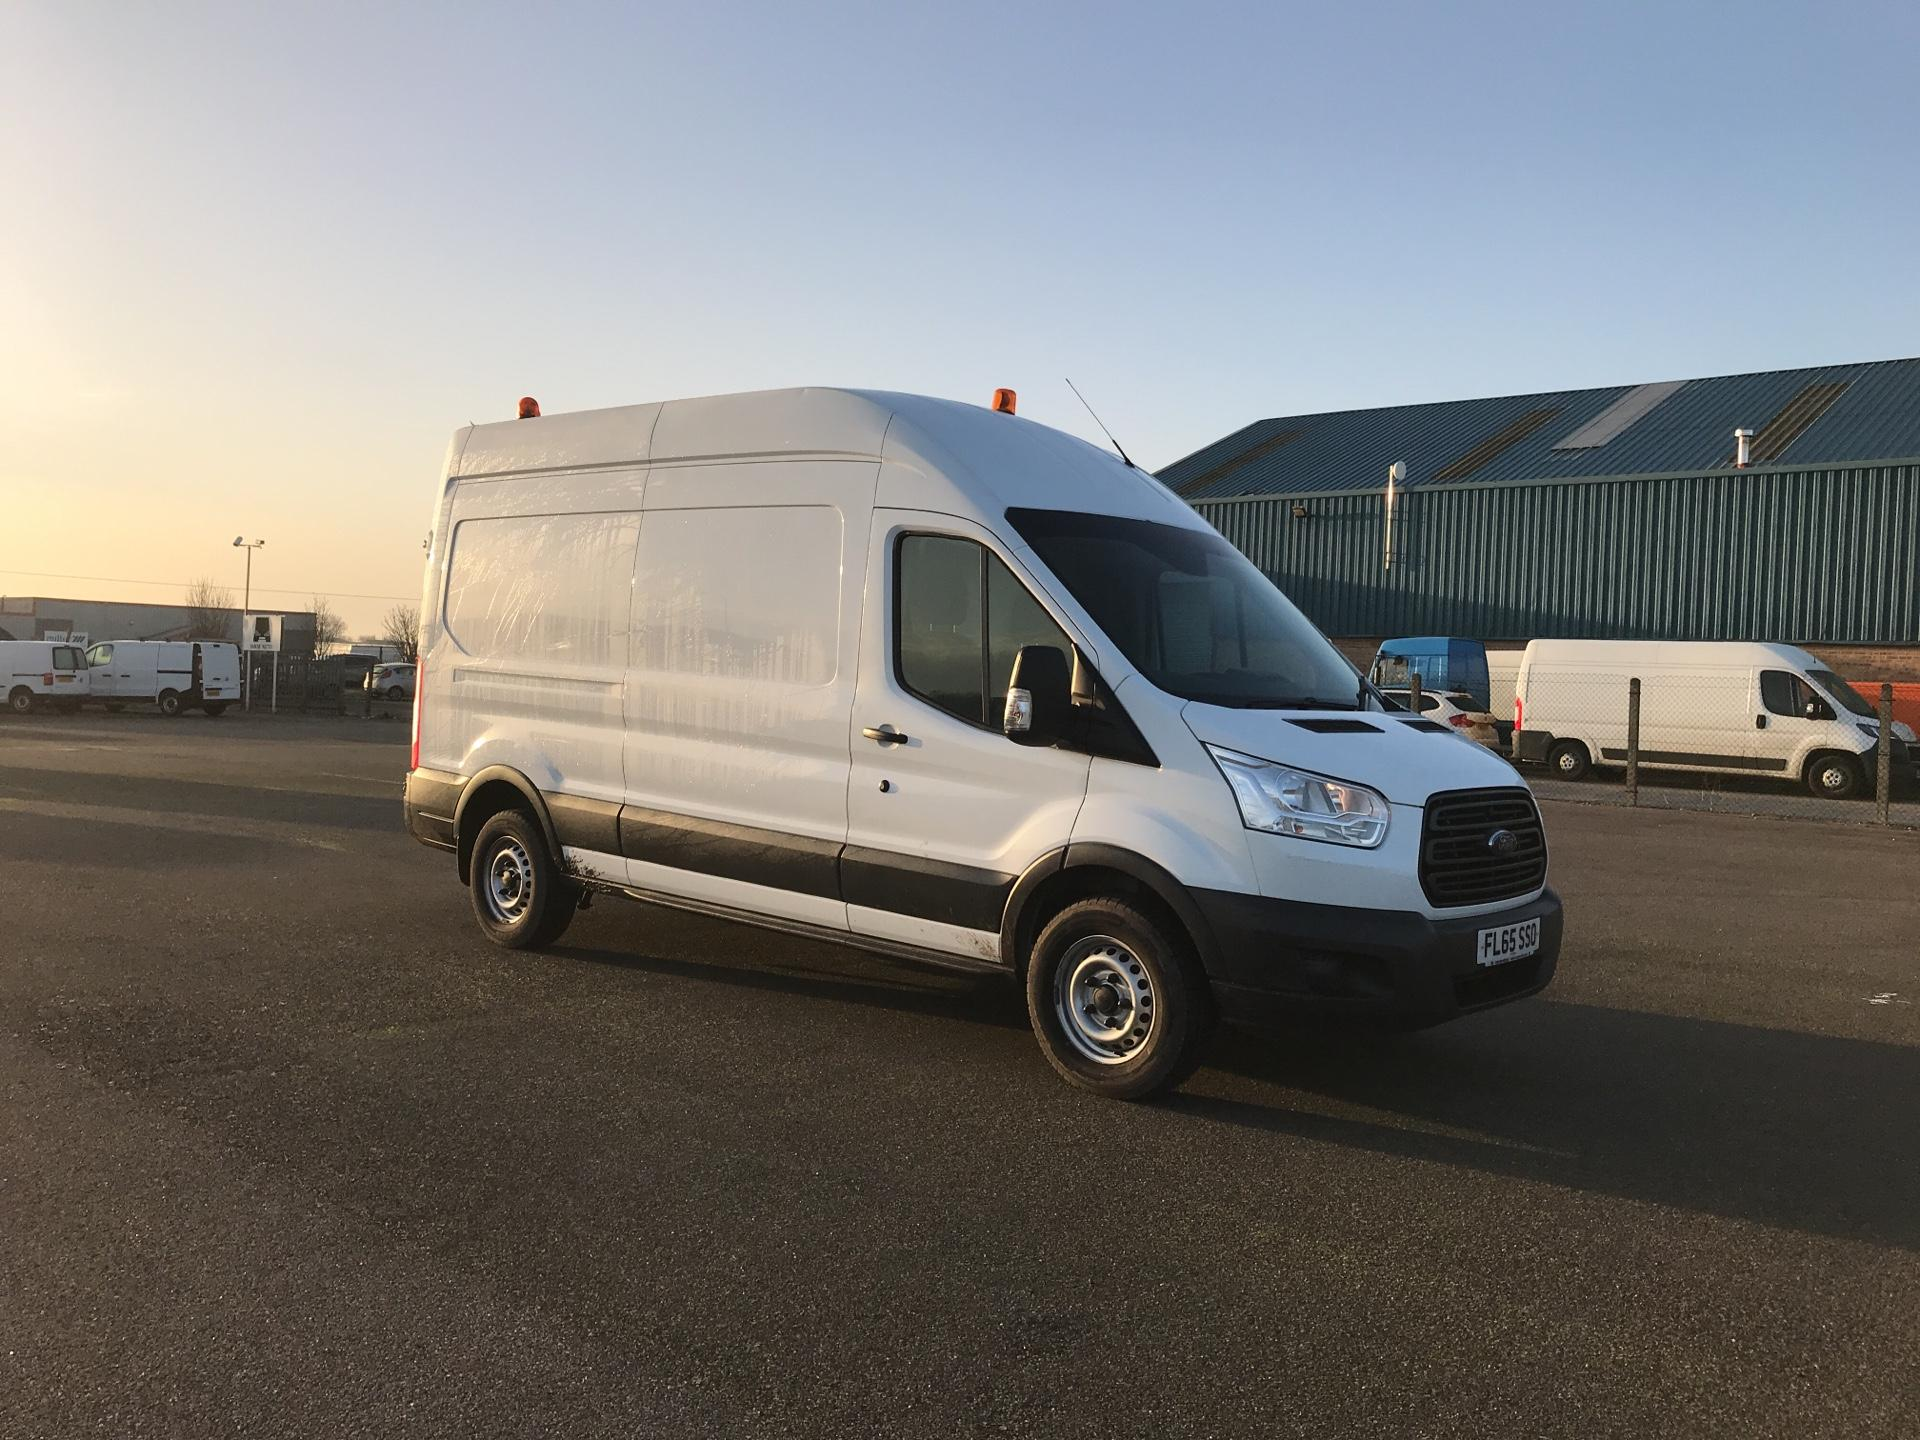 2015 Ford Transit 350 L3 H3 VAN 125PS EURO 5. VALUE RANGE VEHICLE - CONDITION REFLECTED IN PRICE (FL65SSO)